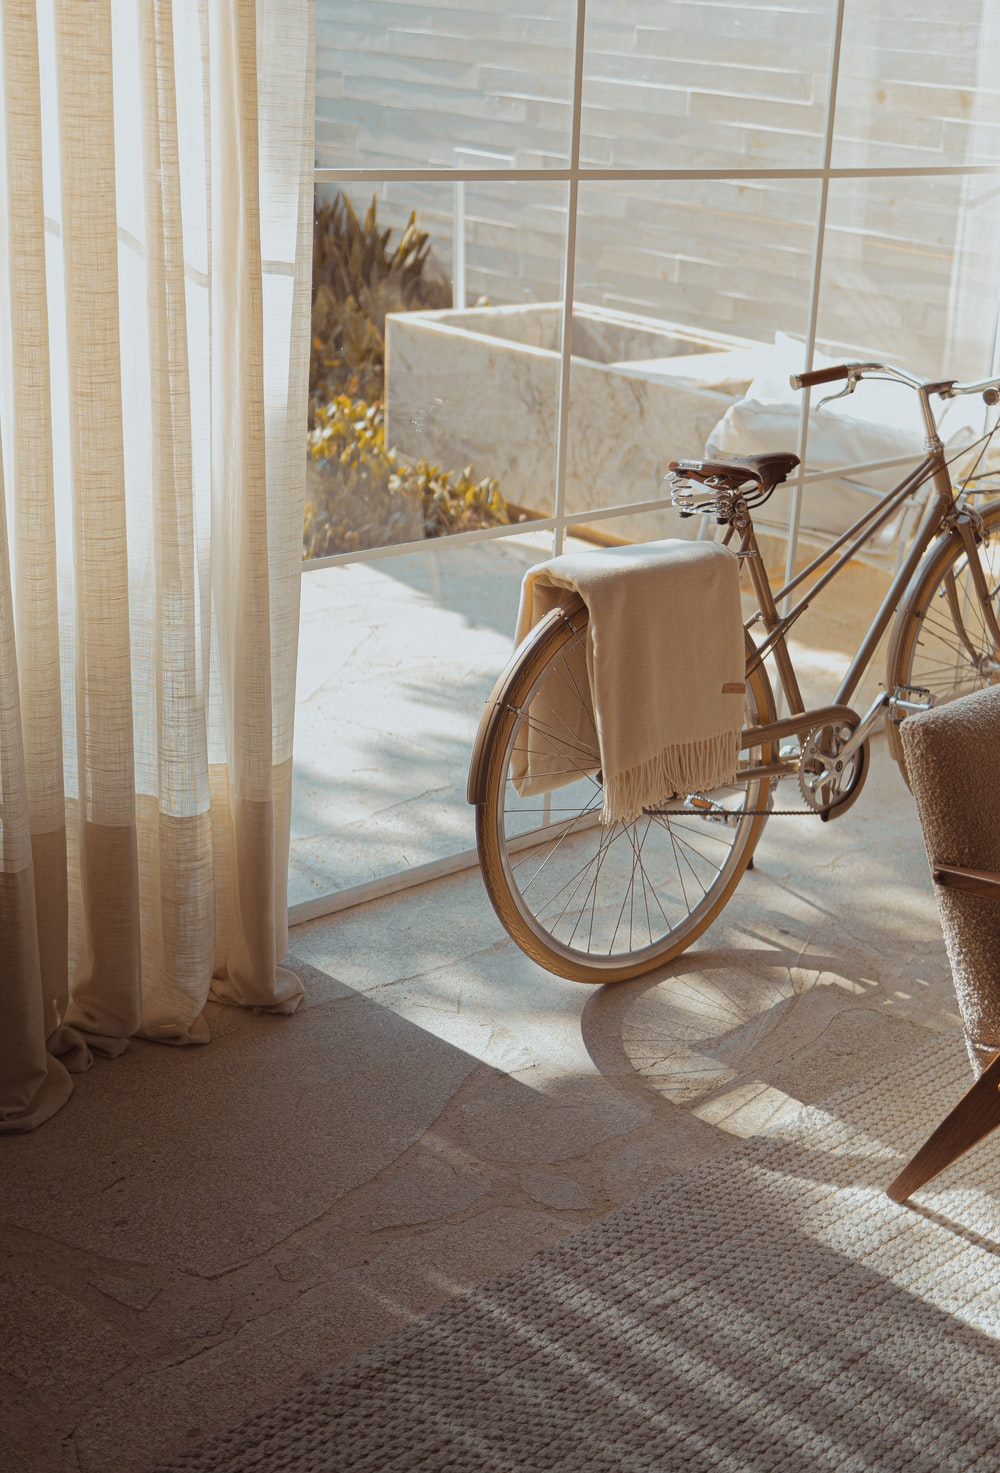 white bike near glass wall